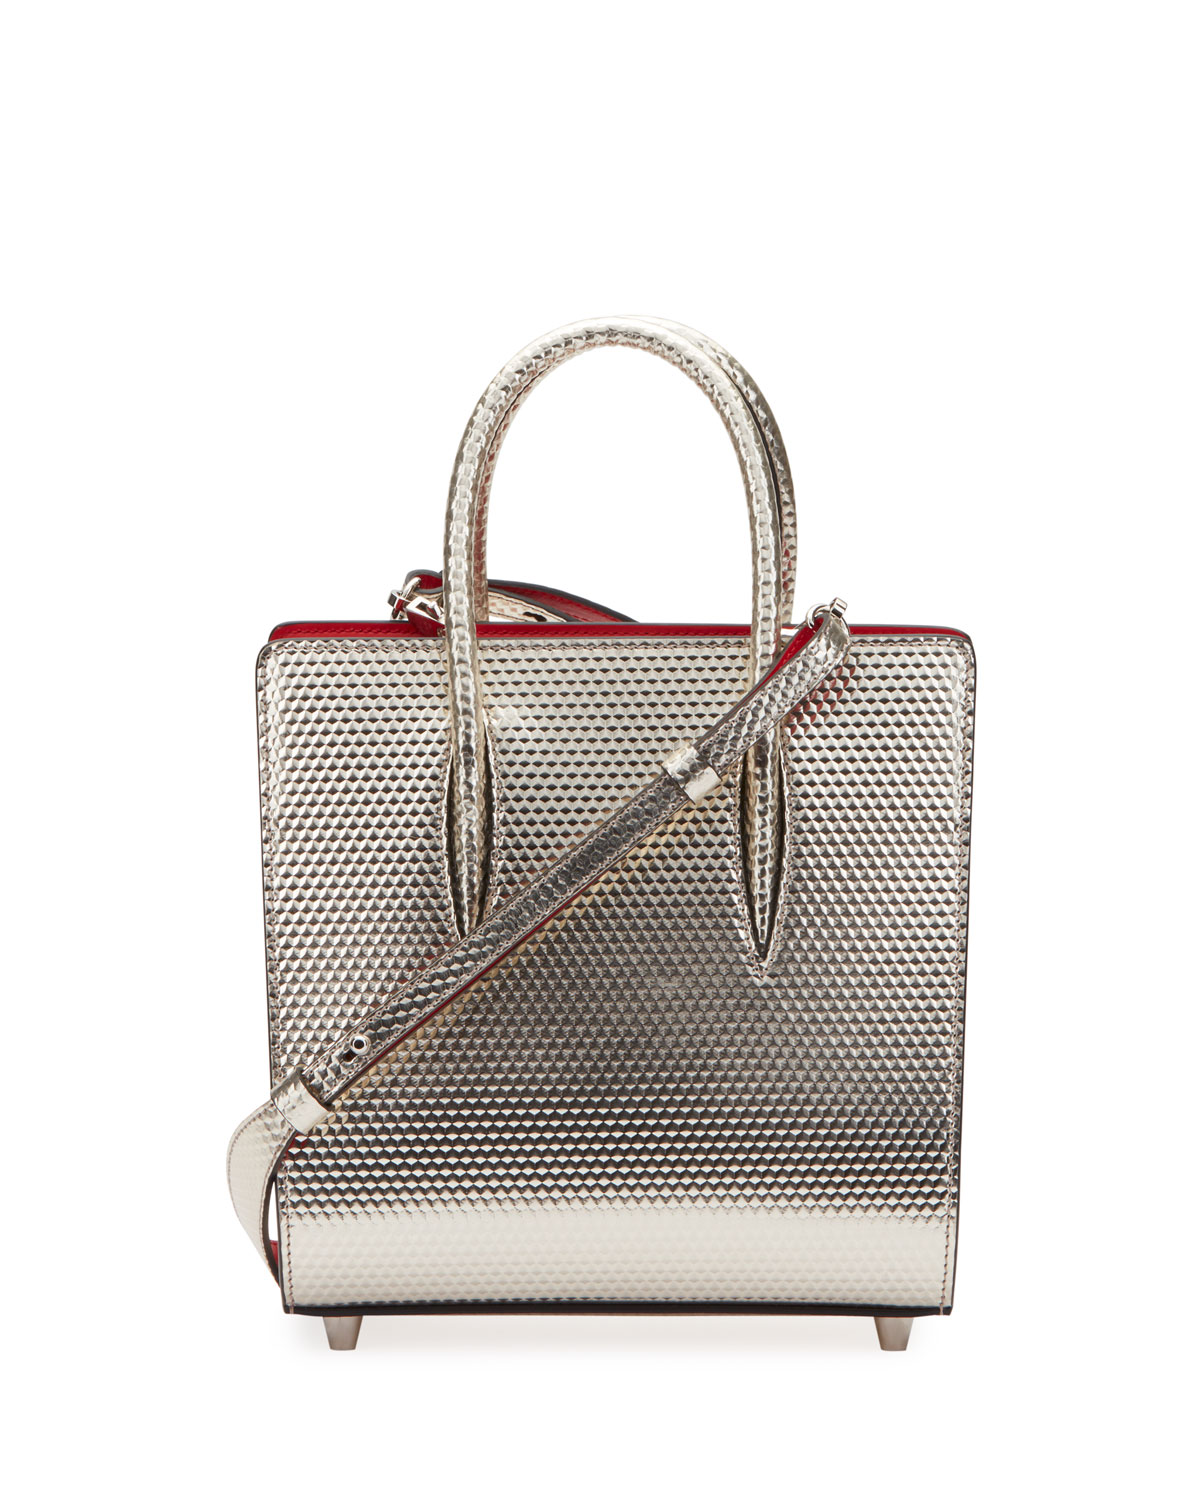 Paloma Small Cubiste Metallic Leather Tote Bag in Silver